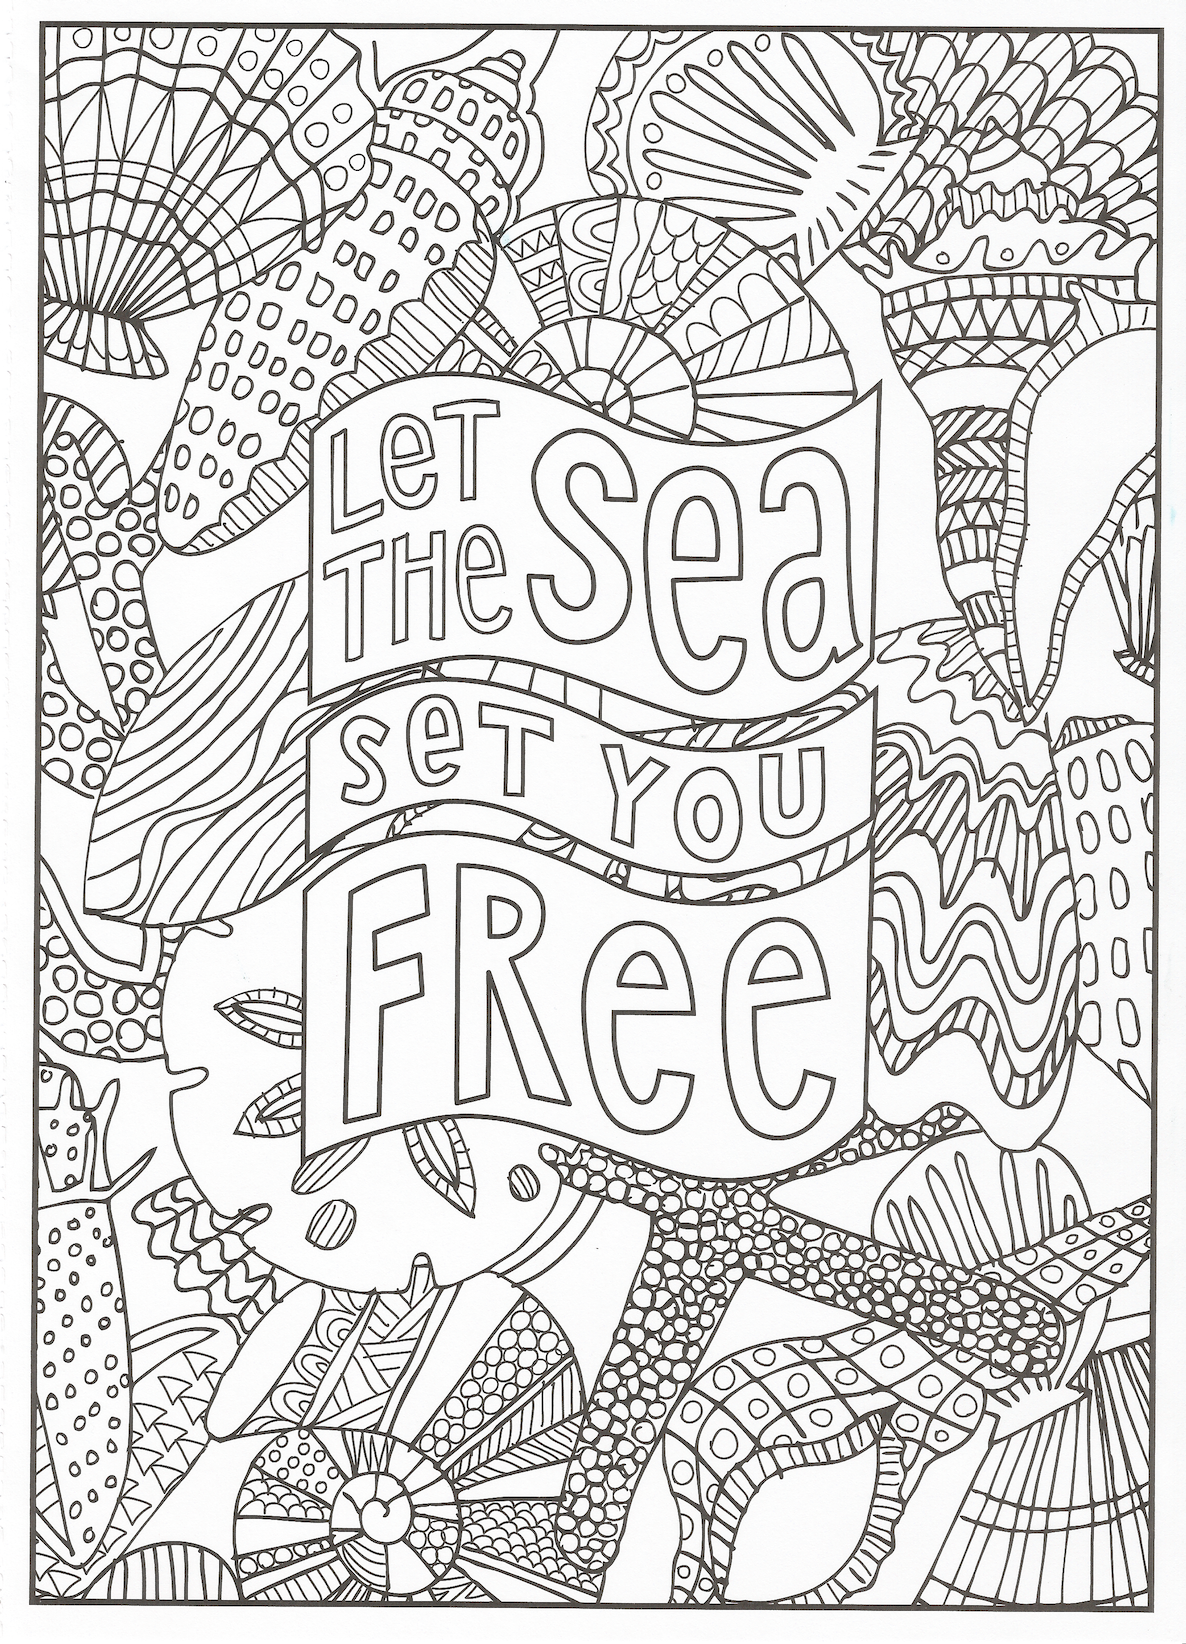 timeless creations creative quotes coloring page let the sea